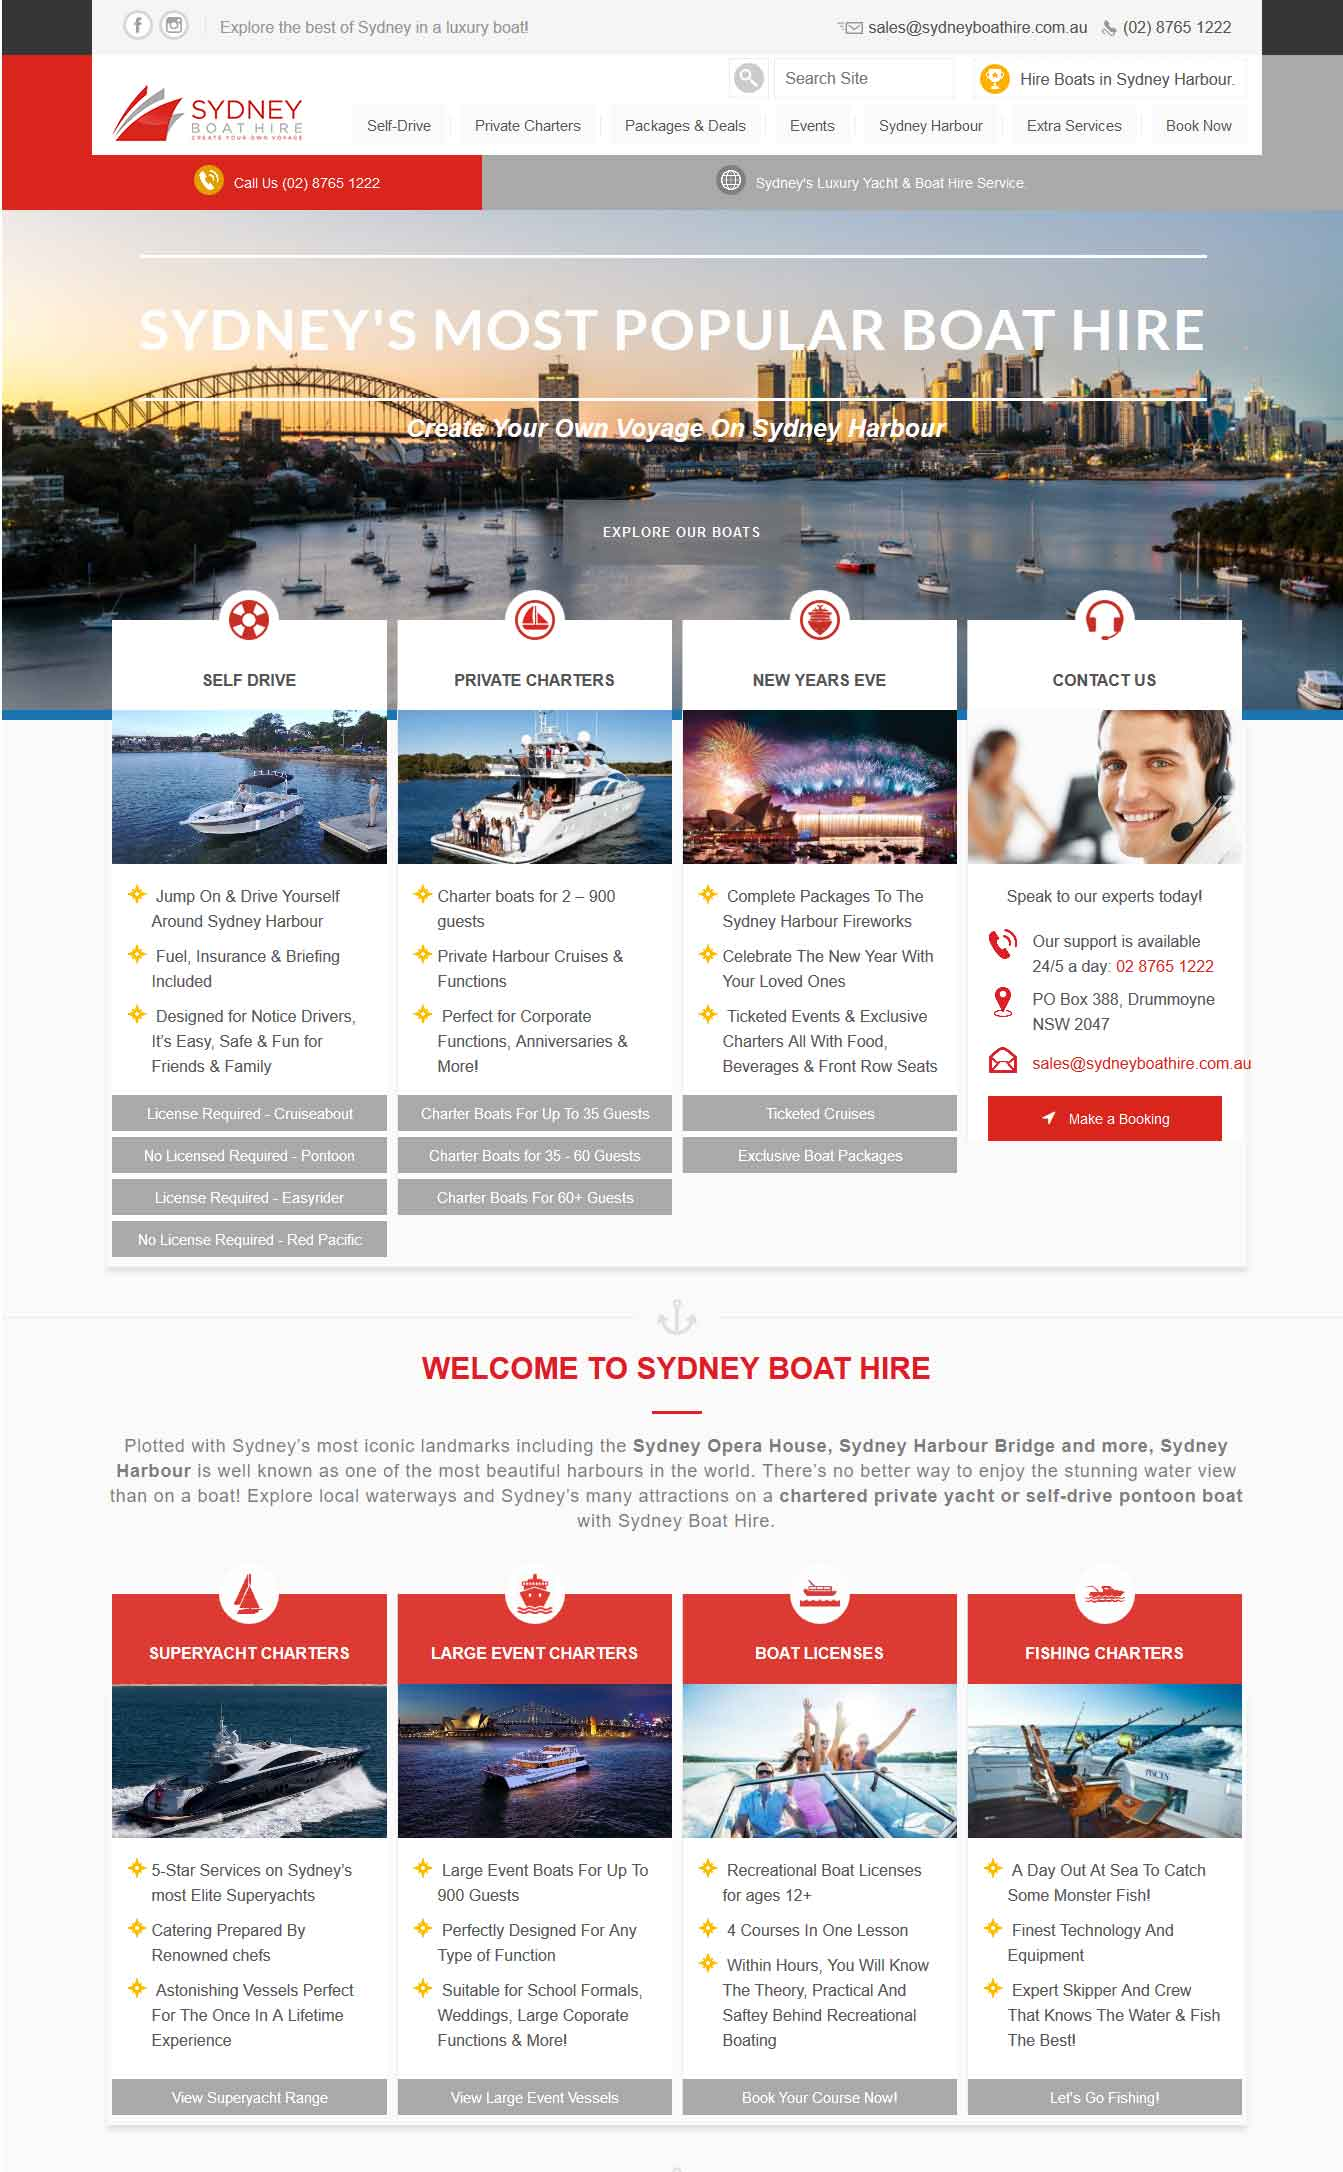 sydneyboathire.com.au